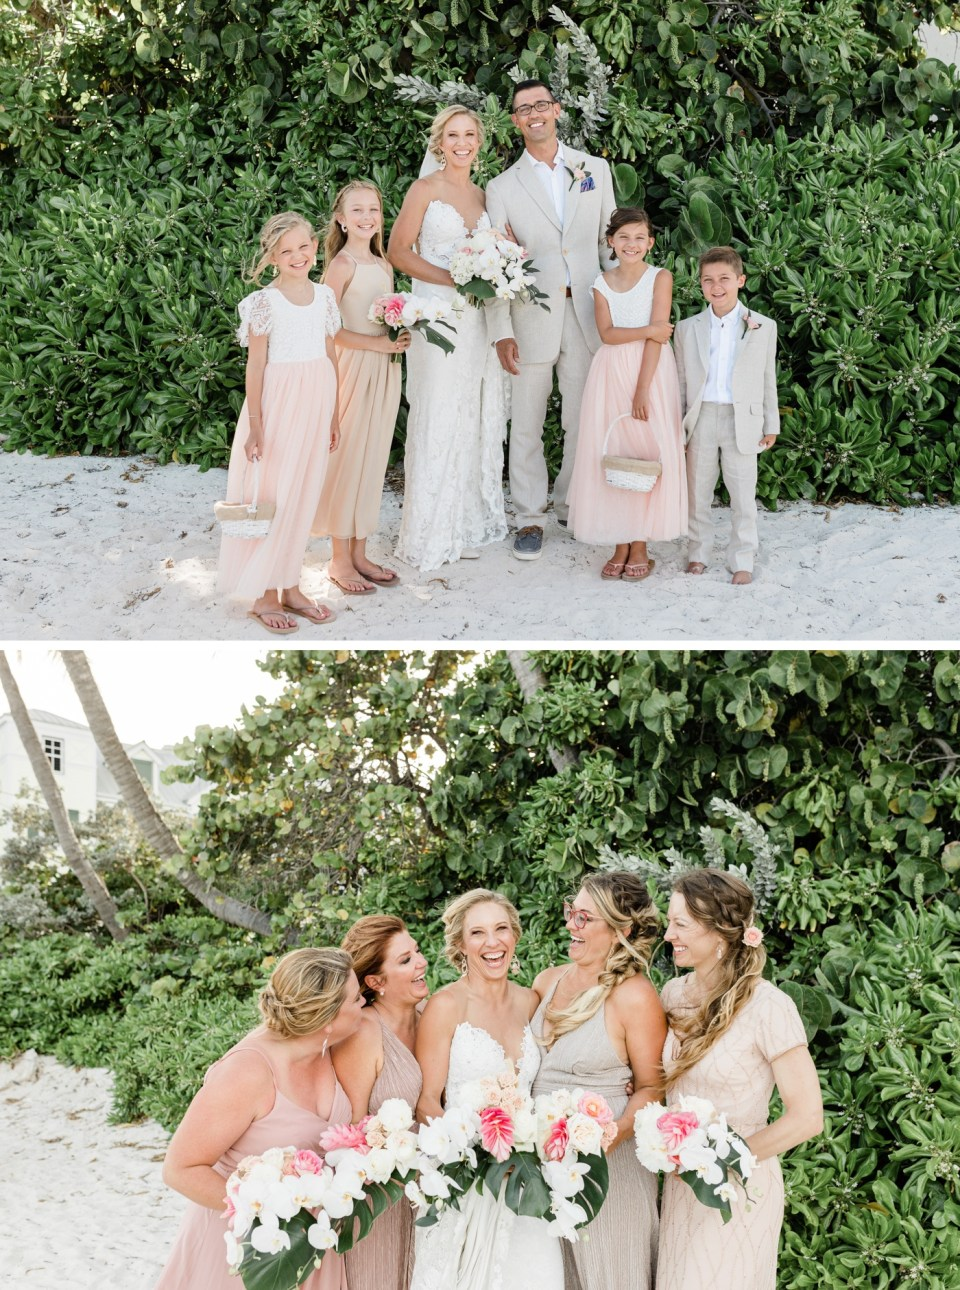 How to get married and plan a wedding in Key West